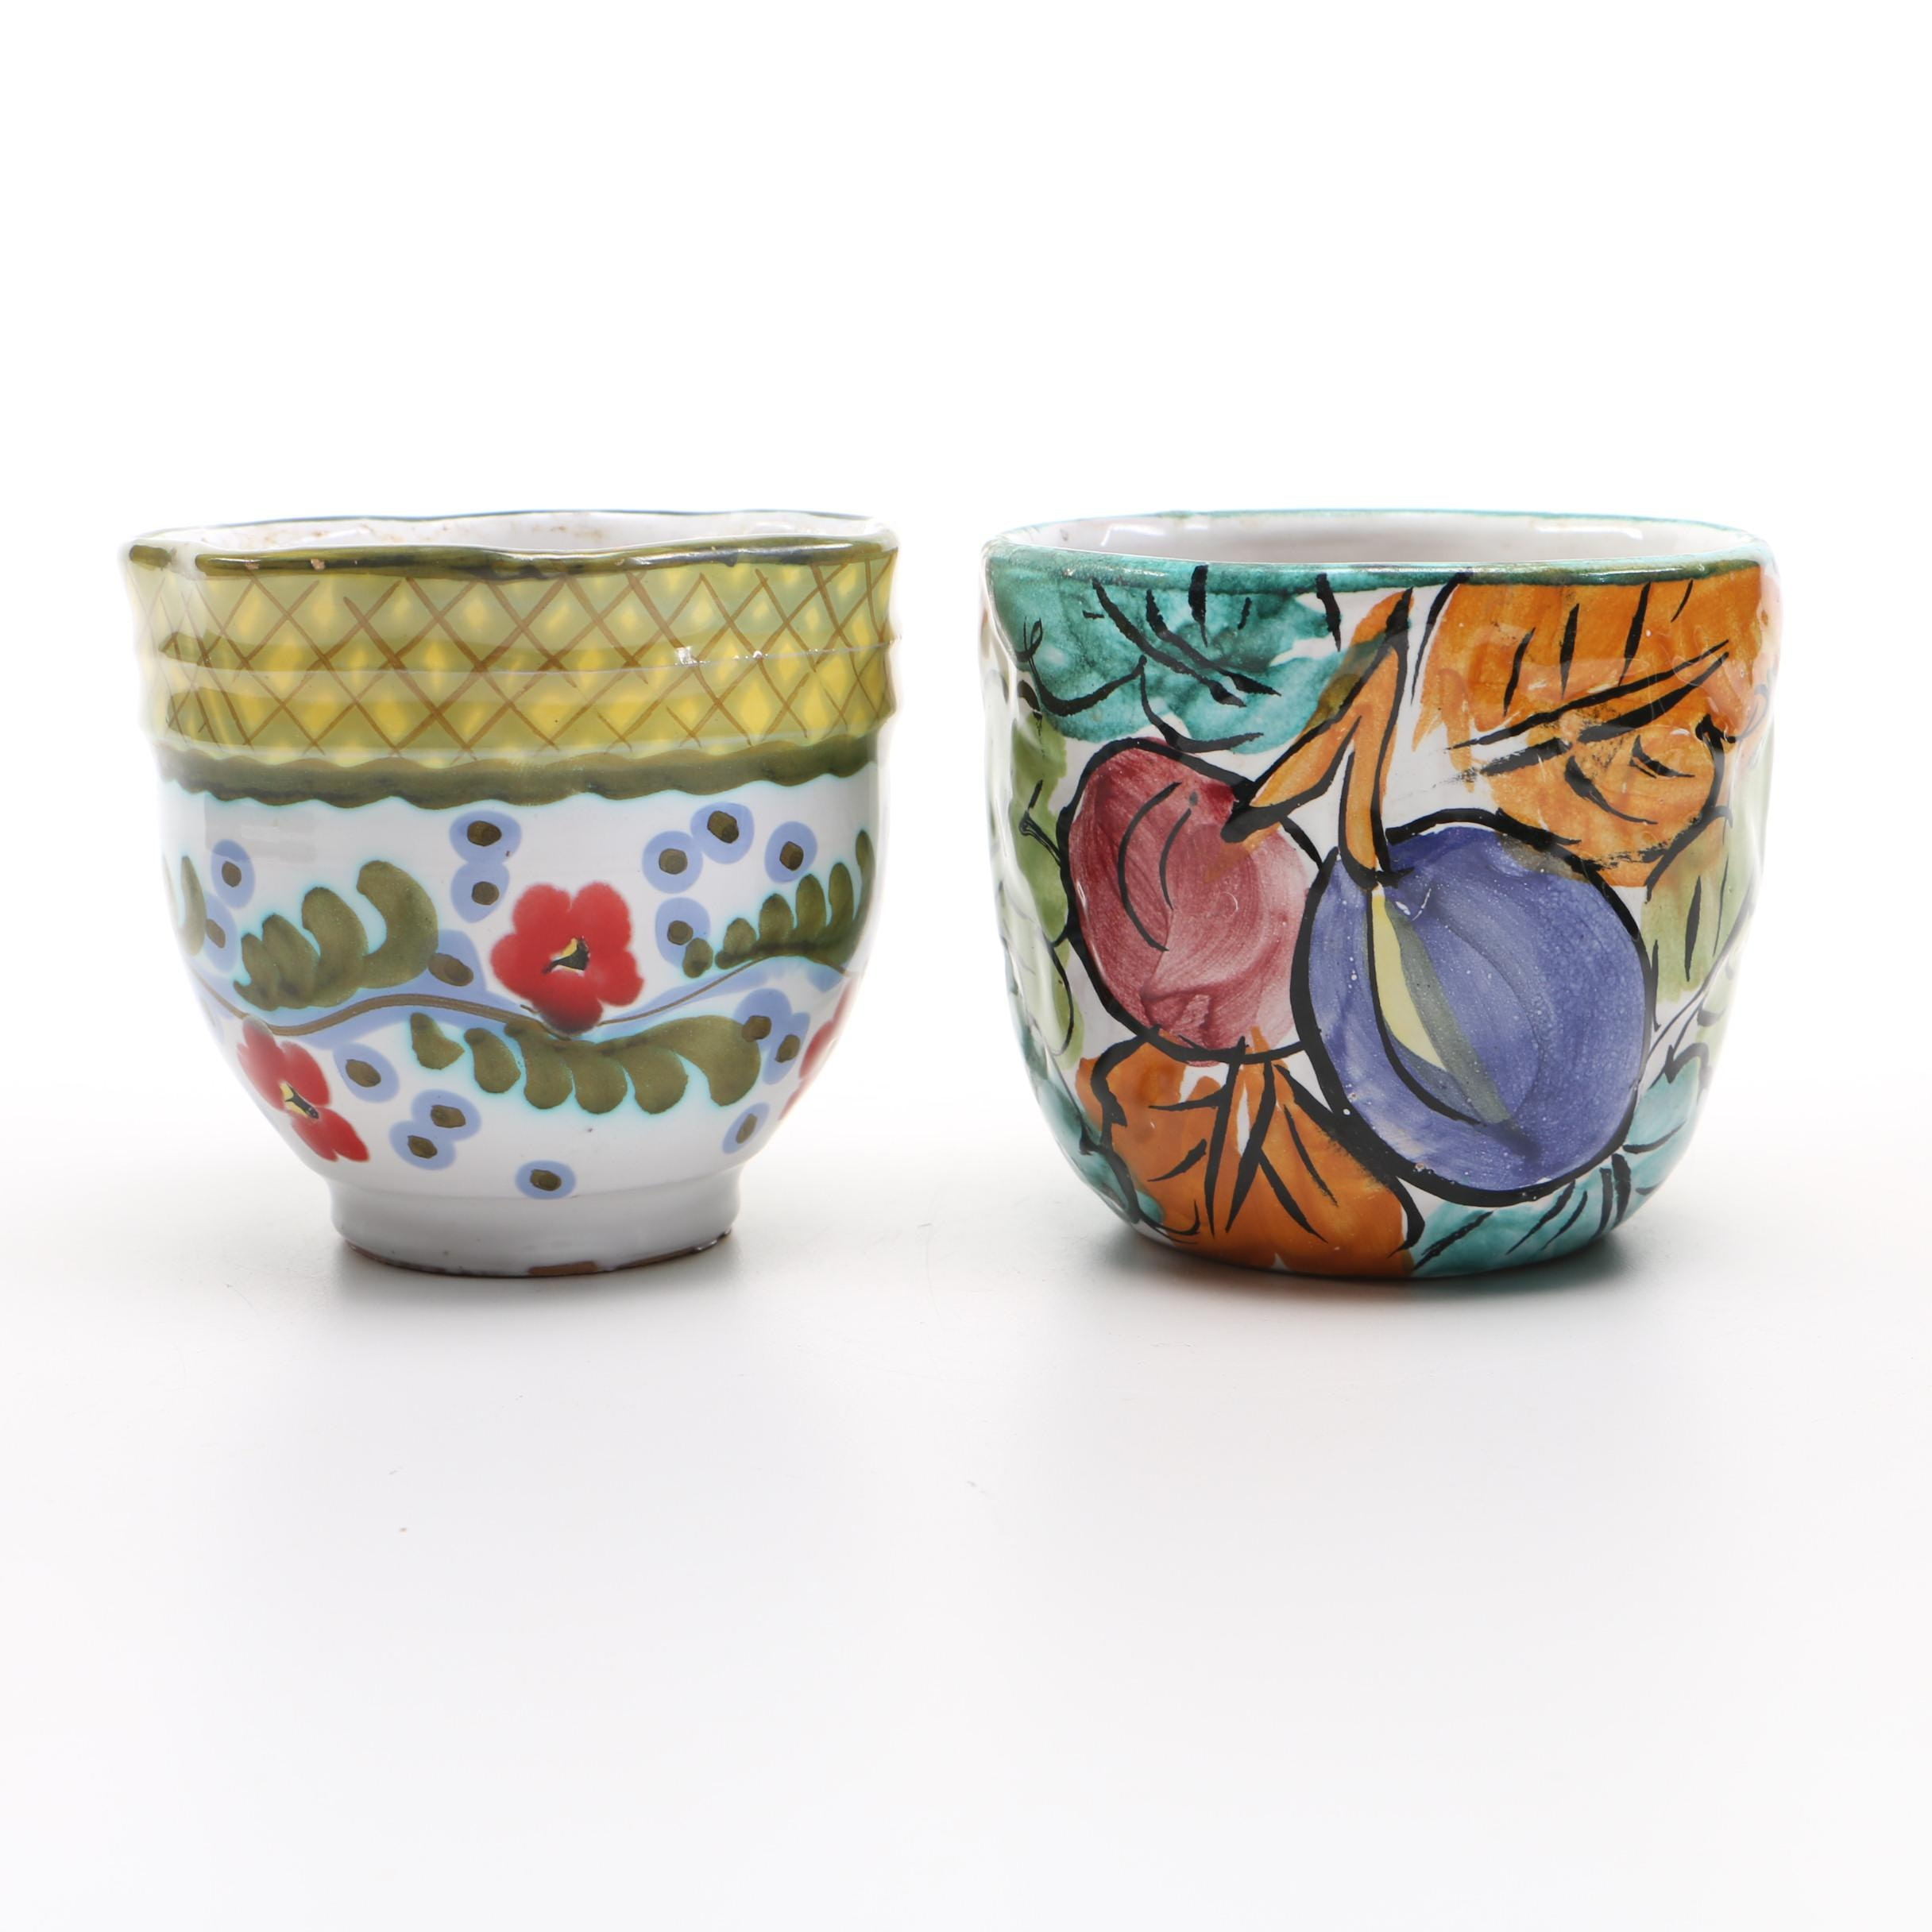 Two Hand-Painted Italian Ceramic Cachepots